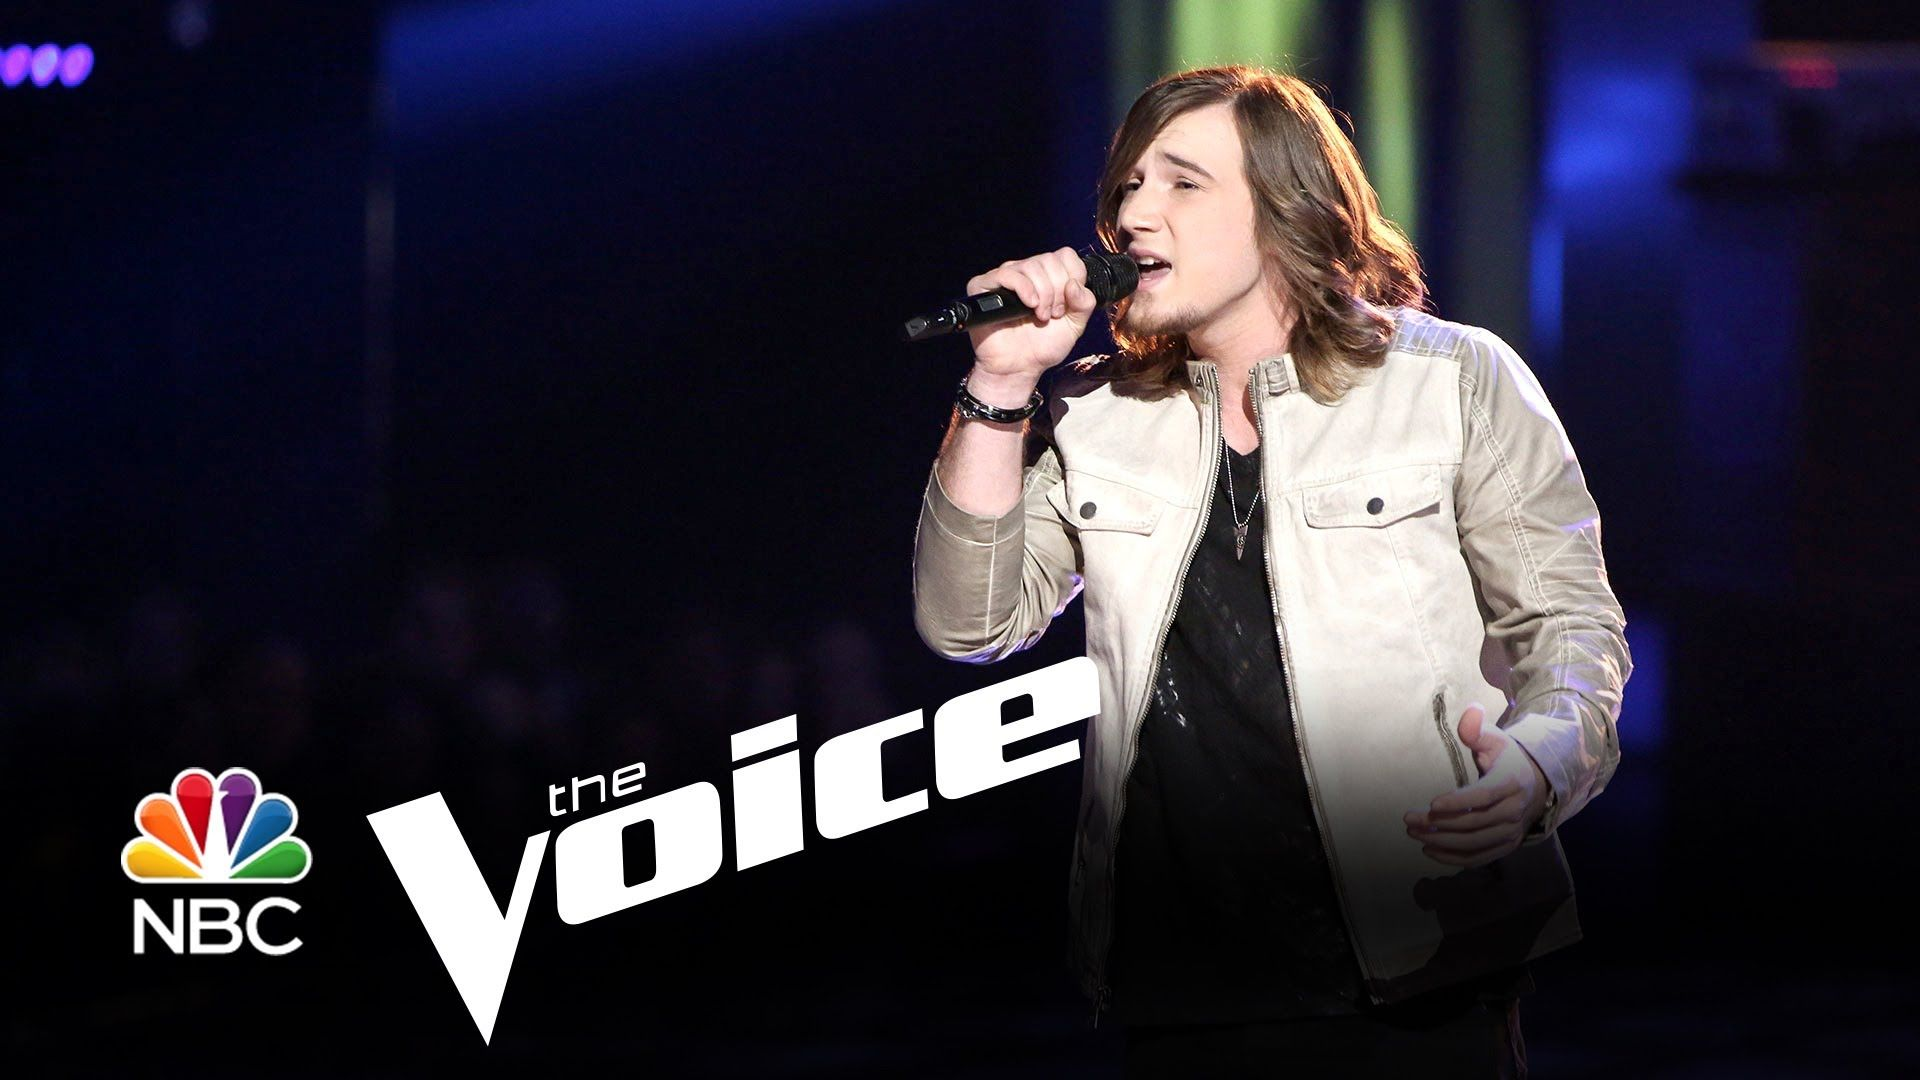 Morgan Wallen Stay The Voice Highlight Playlist Song Playlist The Voice So You Think You Can Dance